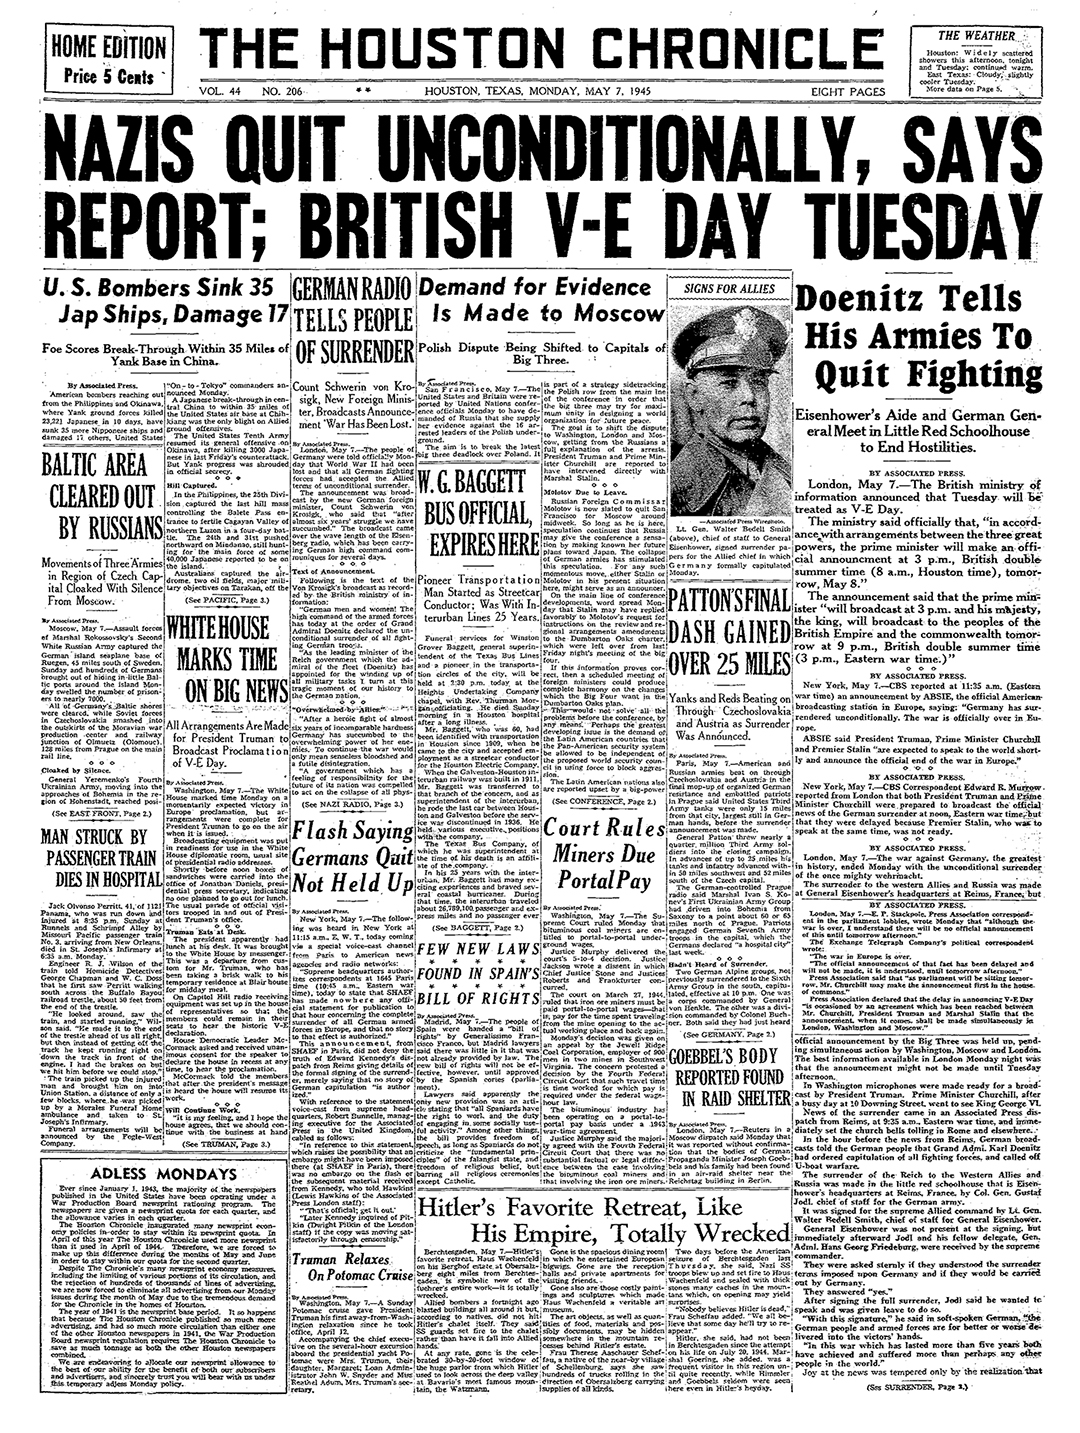 Nazis Quit Unconditionally, Says Report; British V-E Day Tuesday